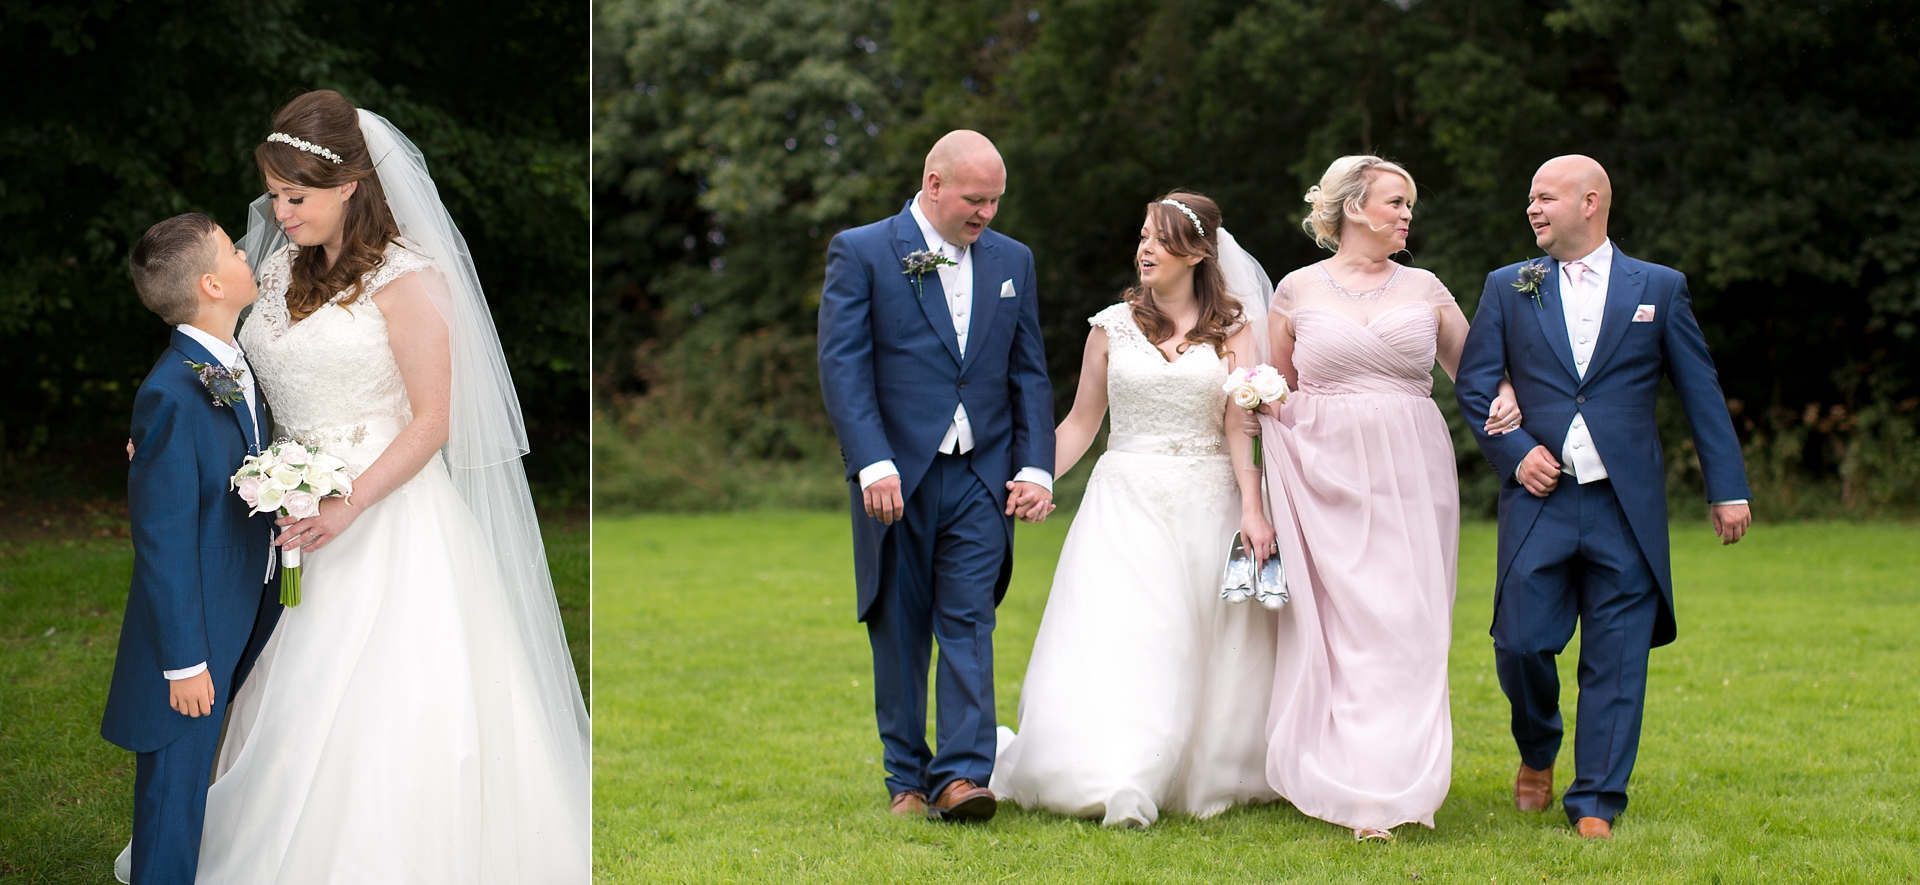 rugeley wedding photographer 7.jpg